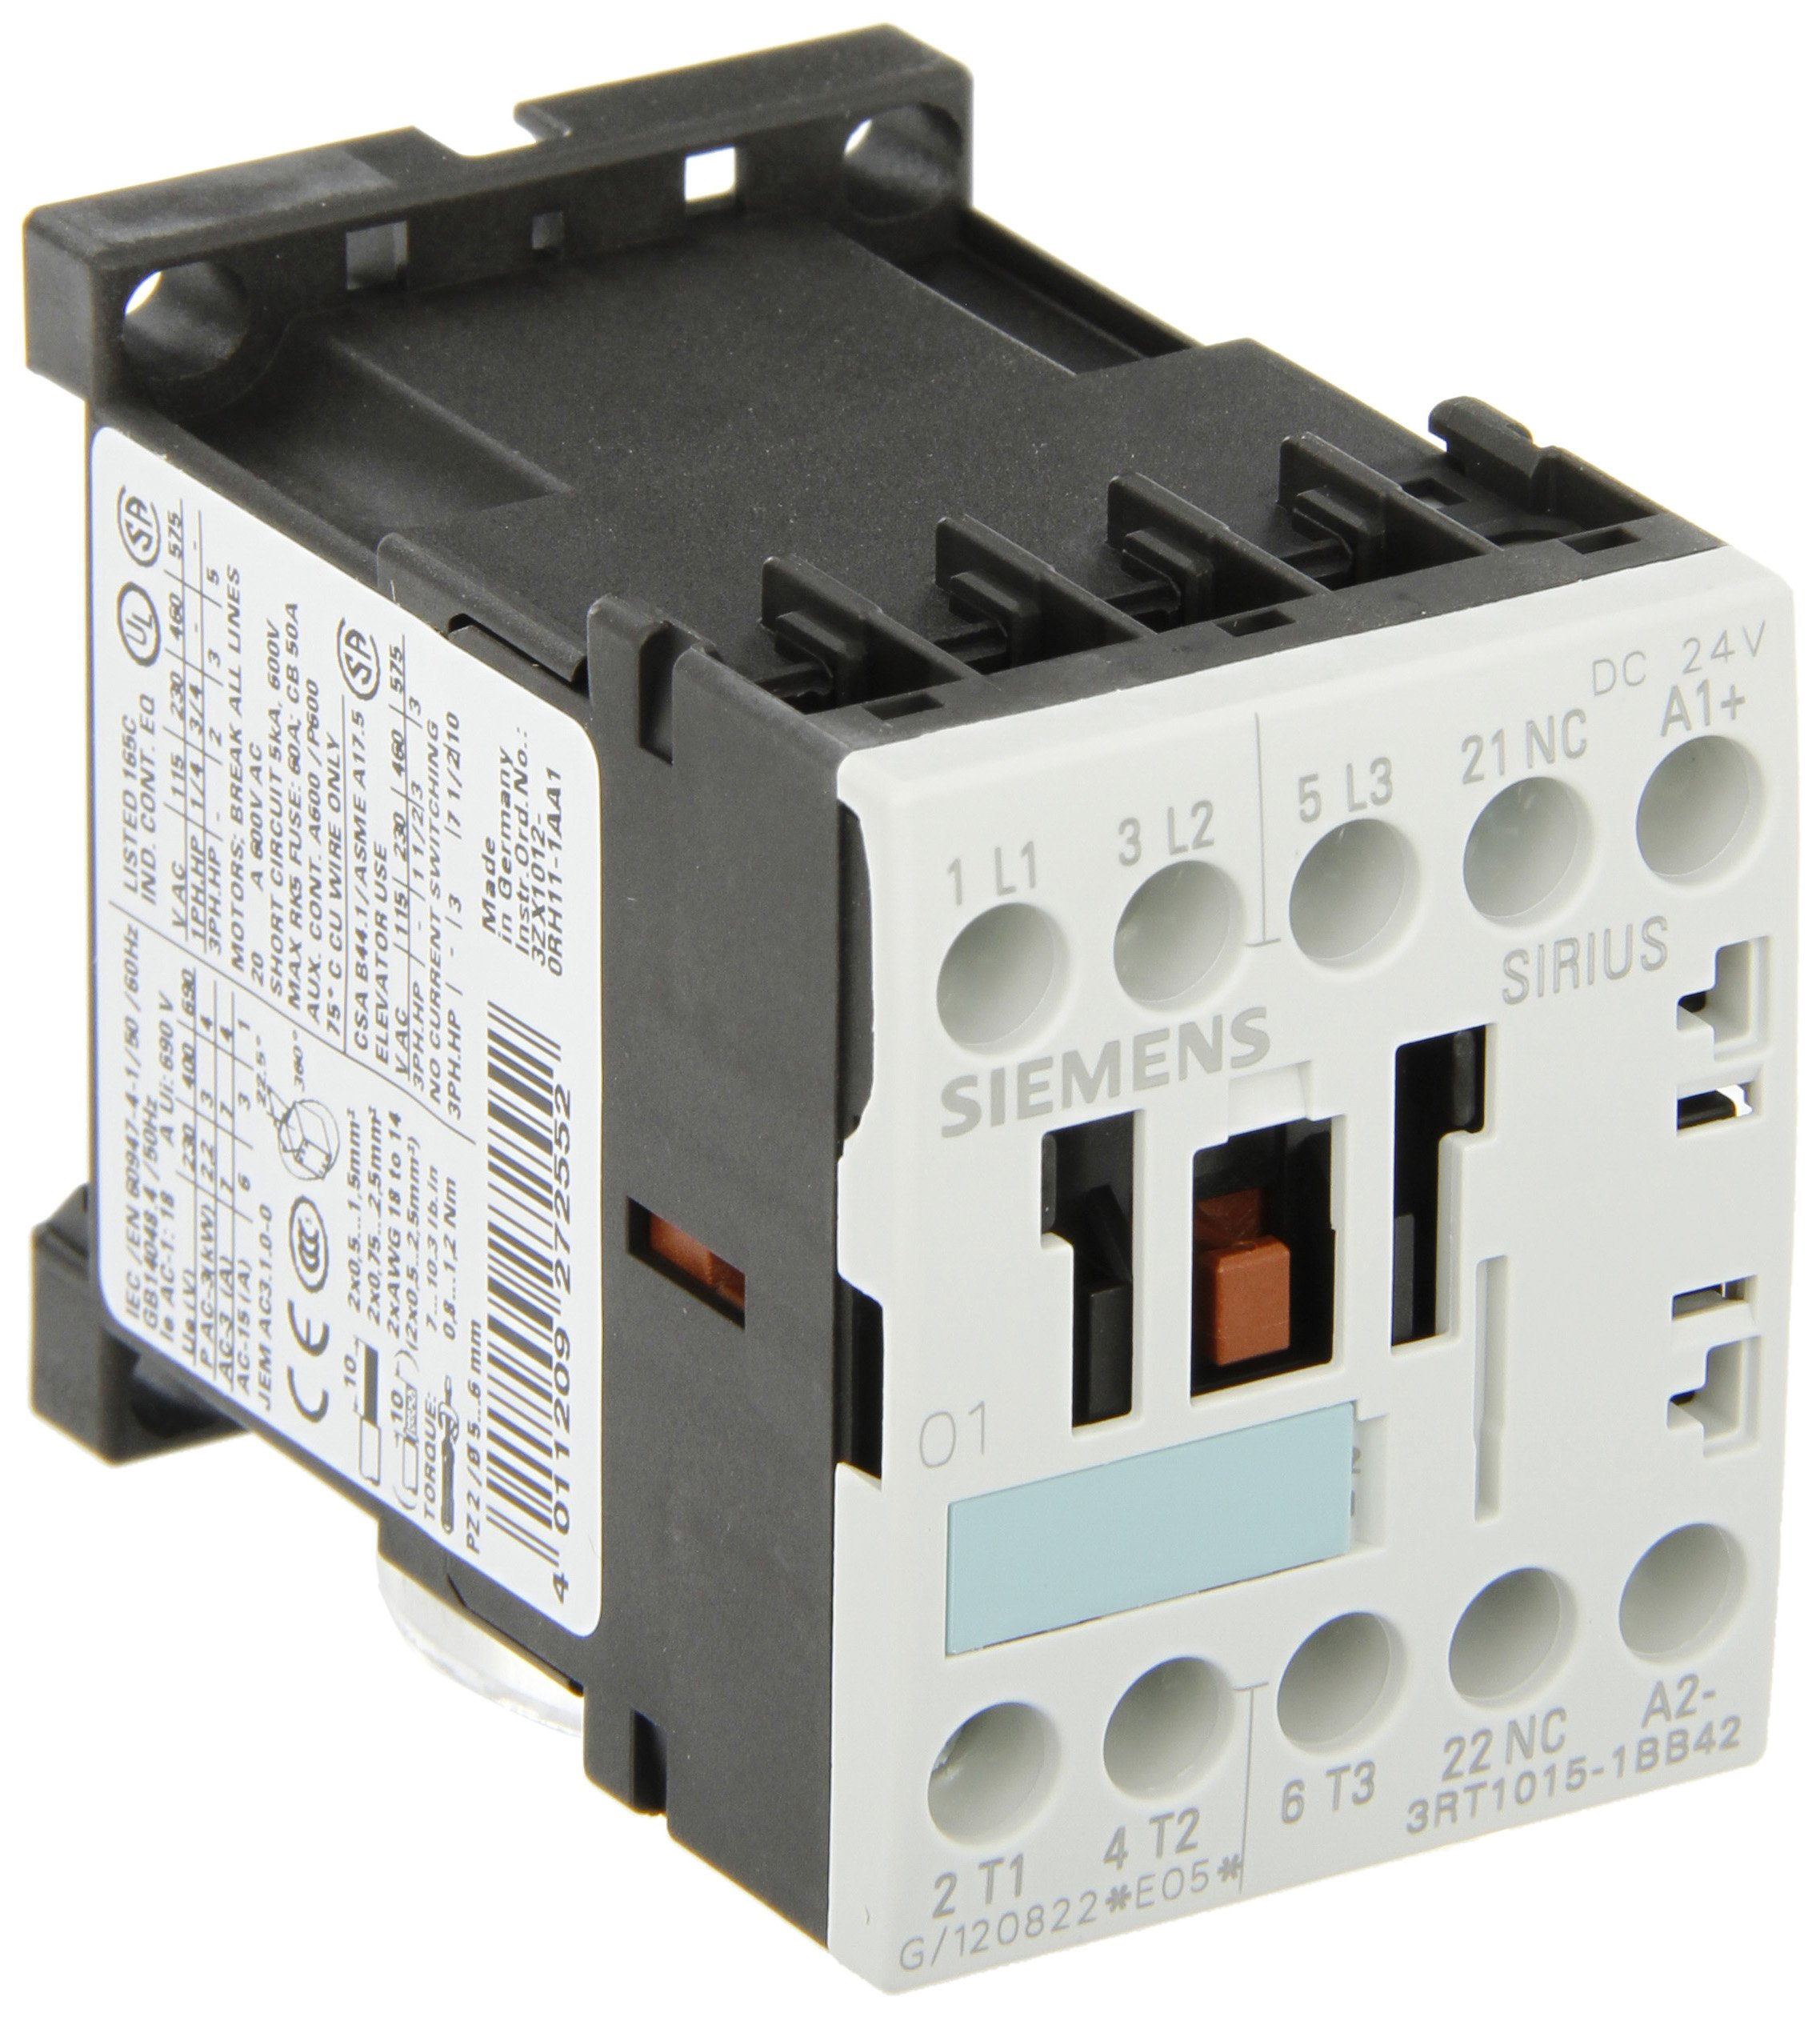 Siemens 3RT10 15-1BB42 Motor Contactor, 3 Poles, Screw Terminals, S00 Frame Size, 1 NC Auxiliary Contact, 24V DC Coil Voltage